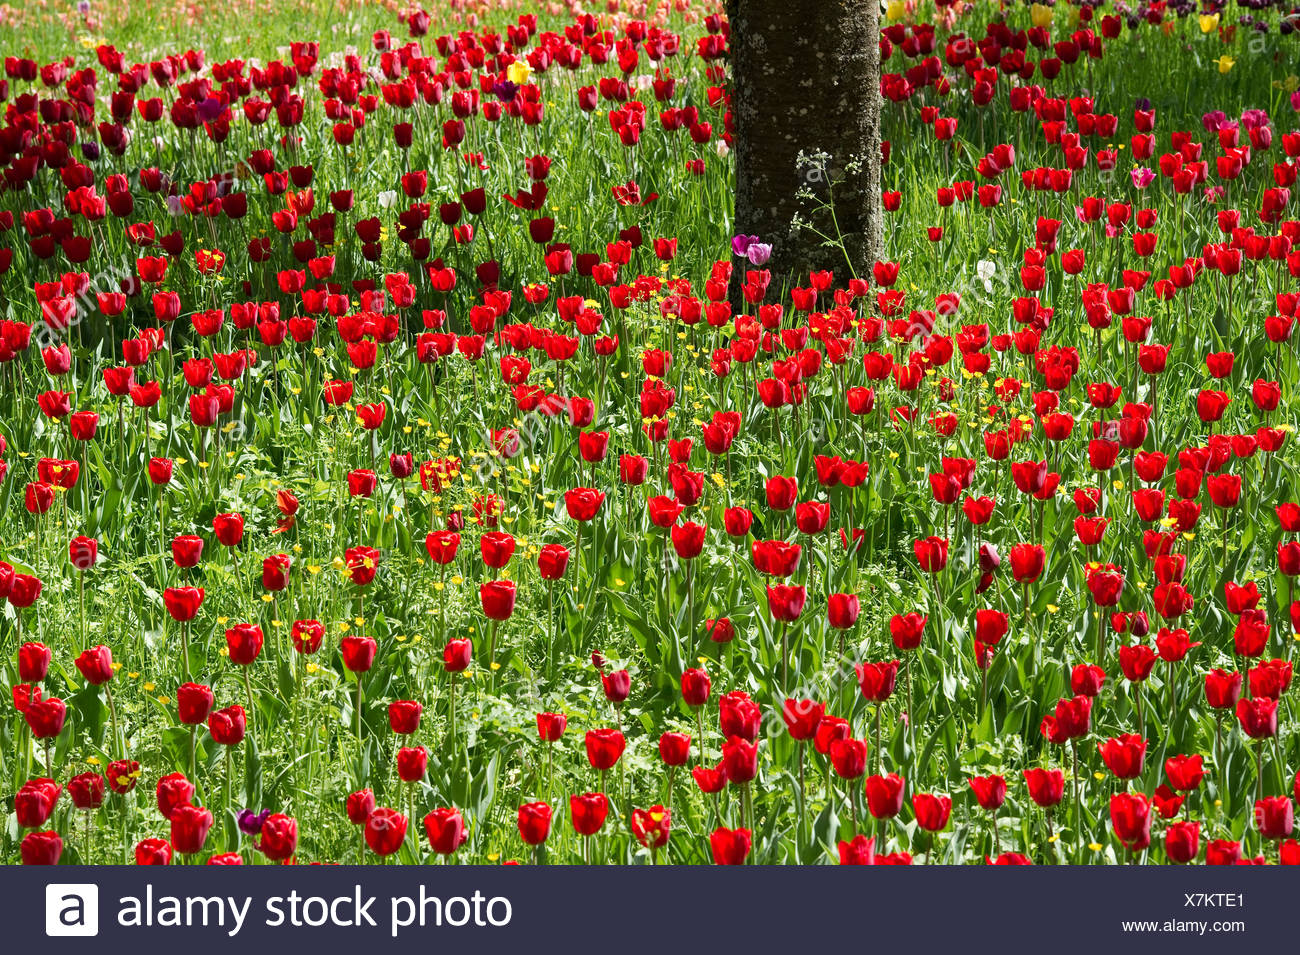 Red tulips, tulip field, Insel Mainau, Konstanz, Baden-Württemberg, Germany - Stock Image